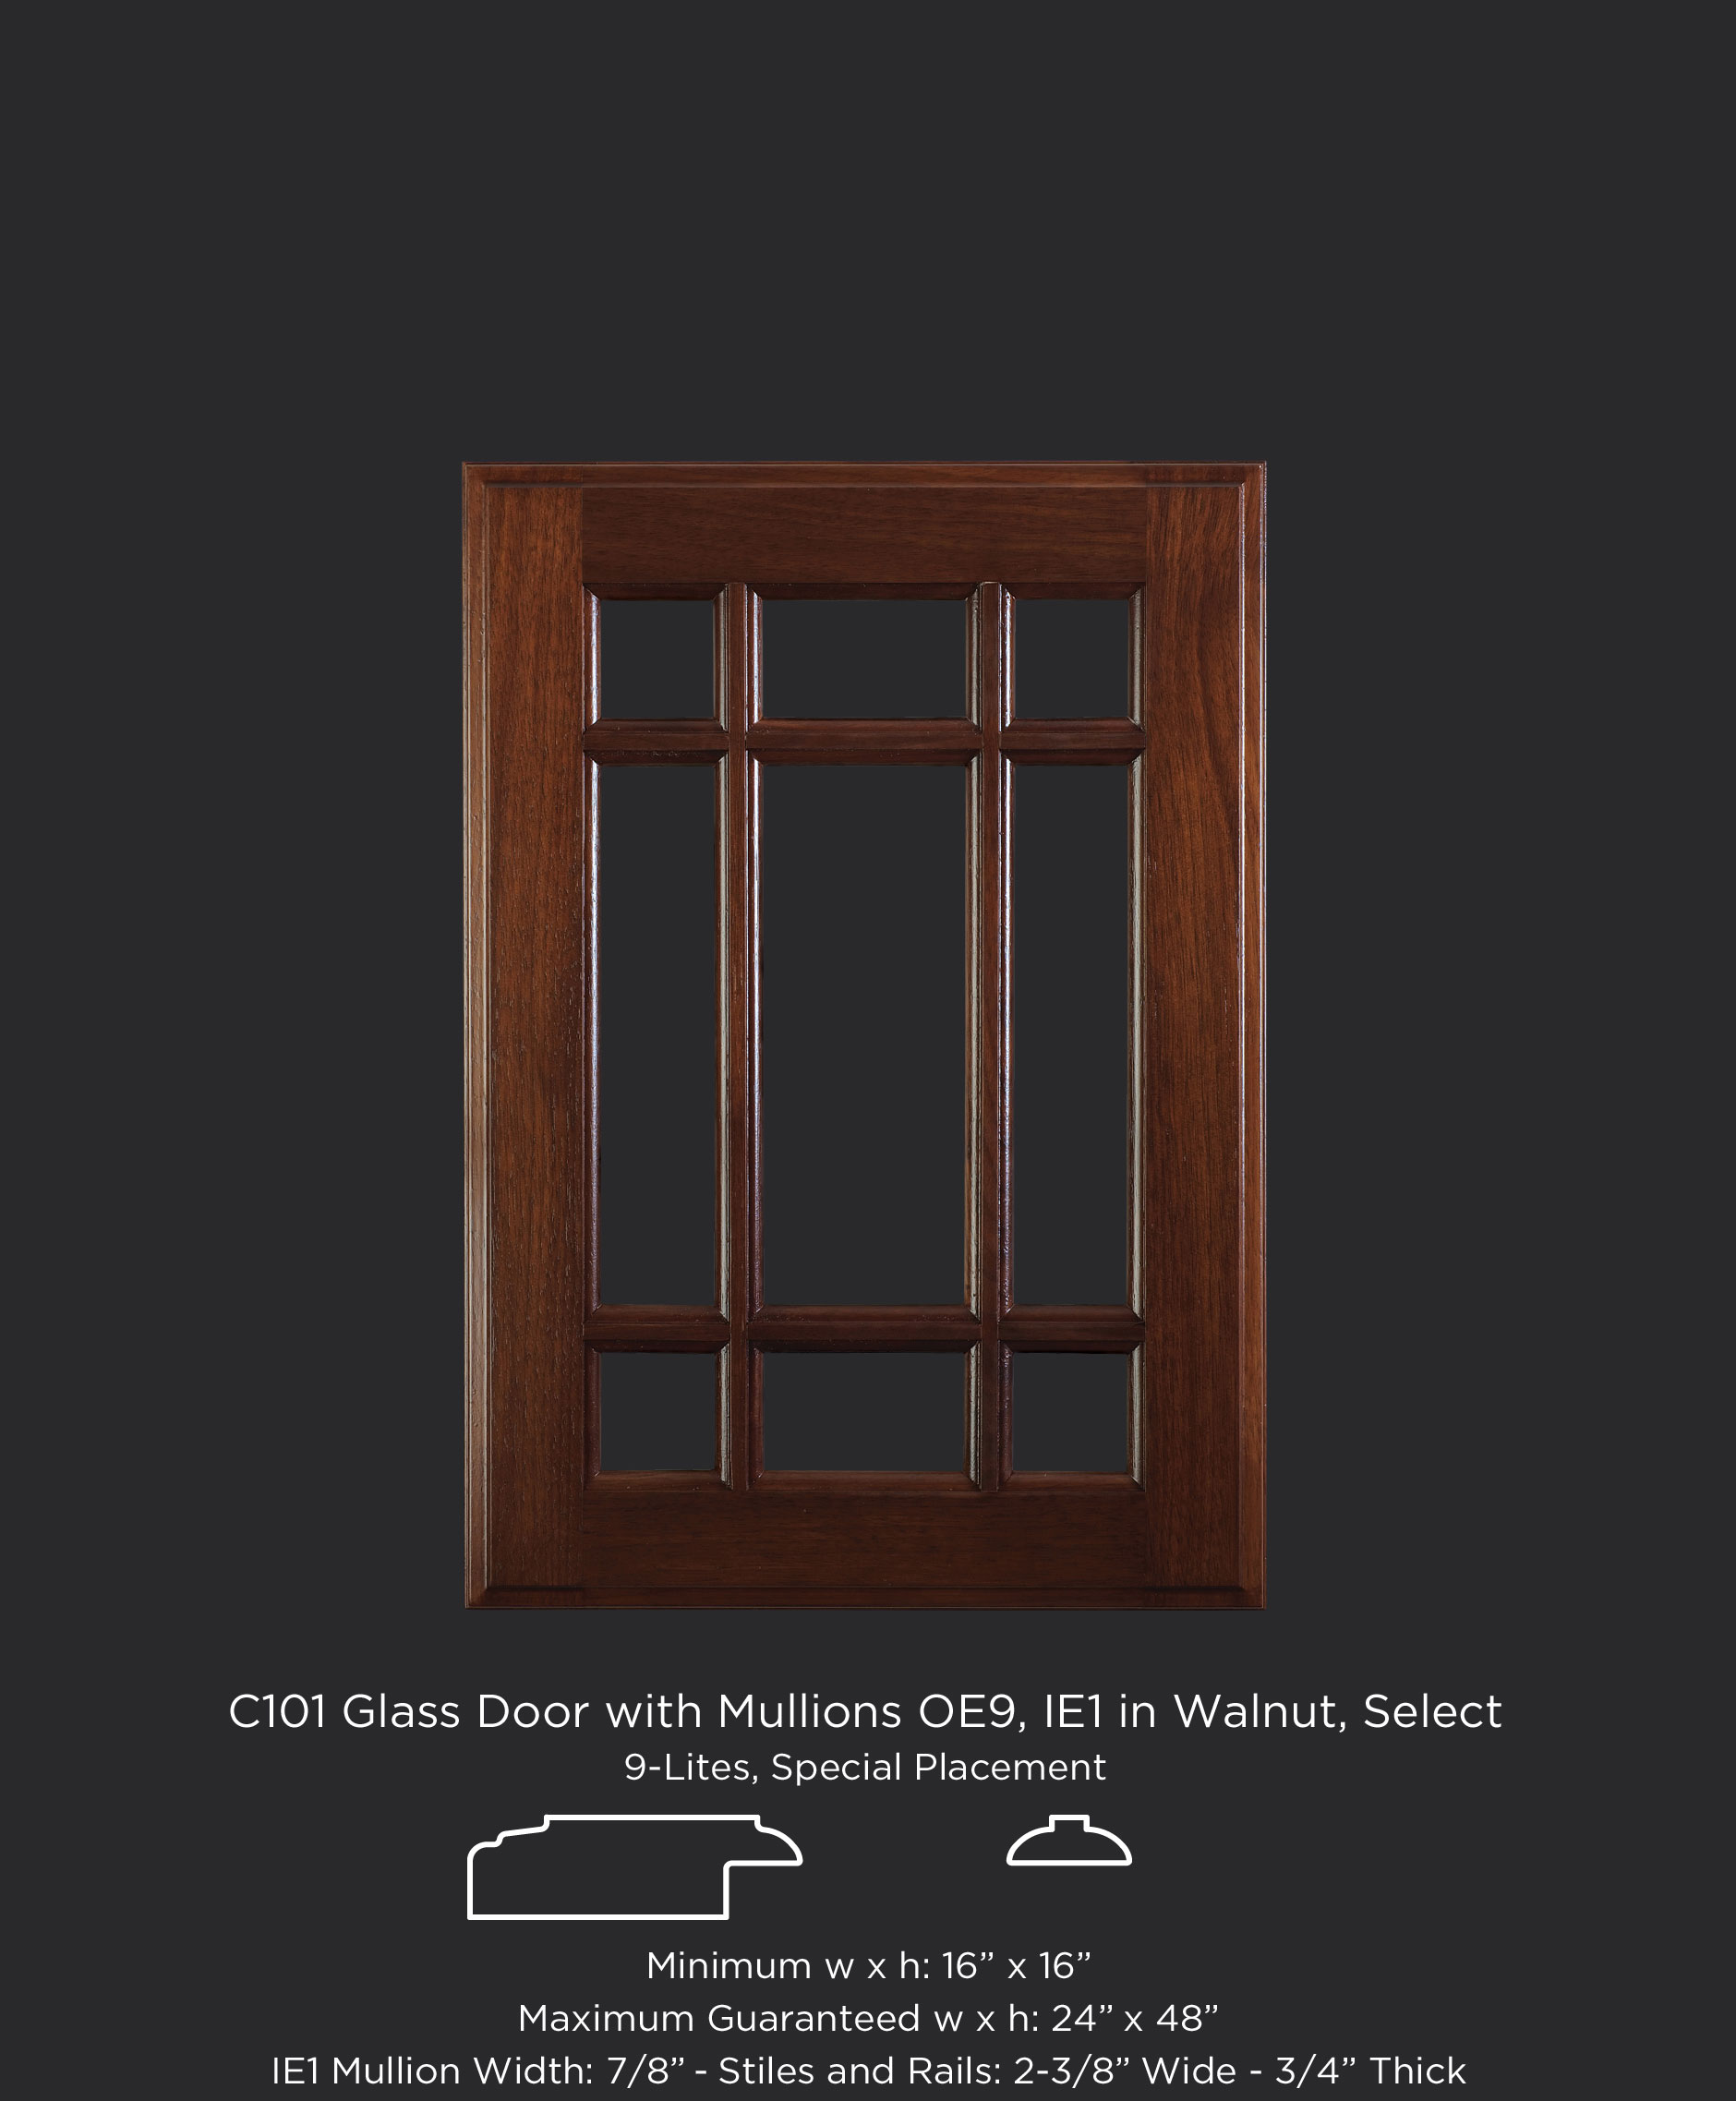 C101 Glass door with 9 lites, OE9, IE1 in Walnut, Select, stained